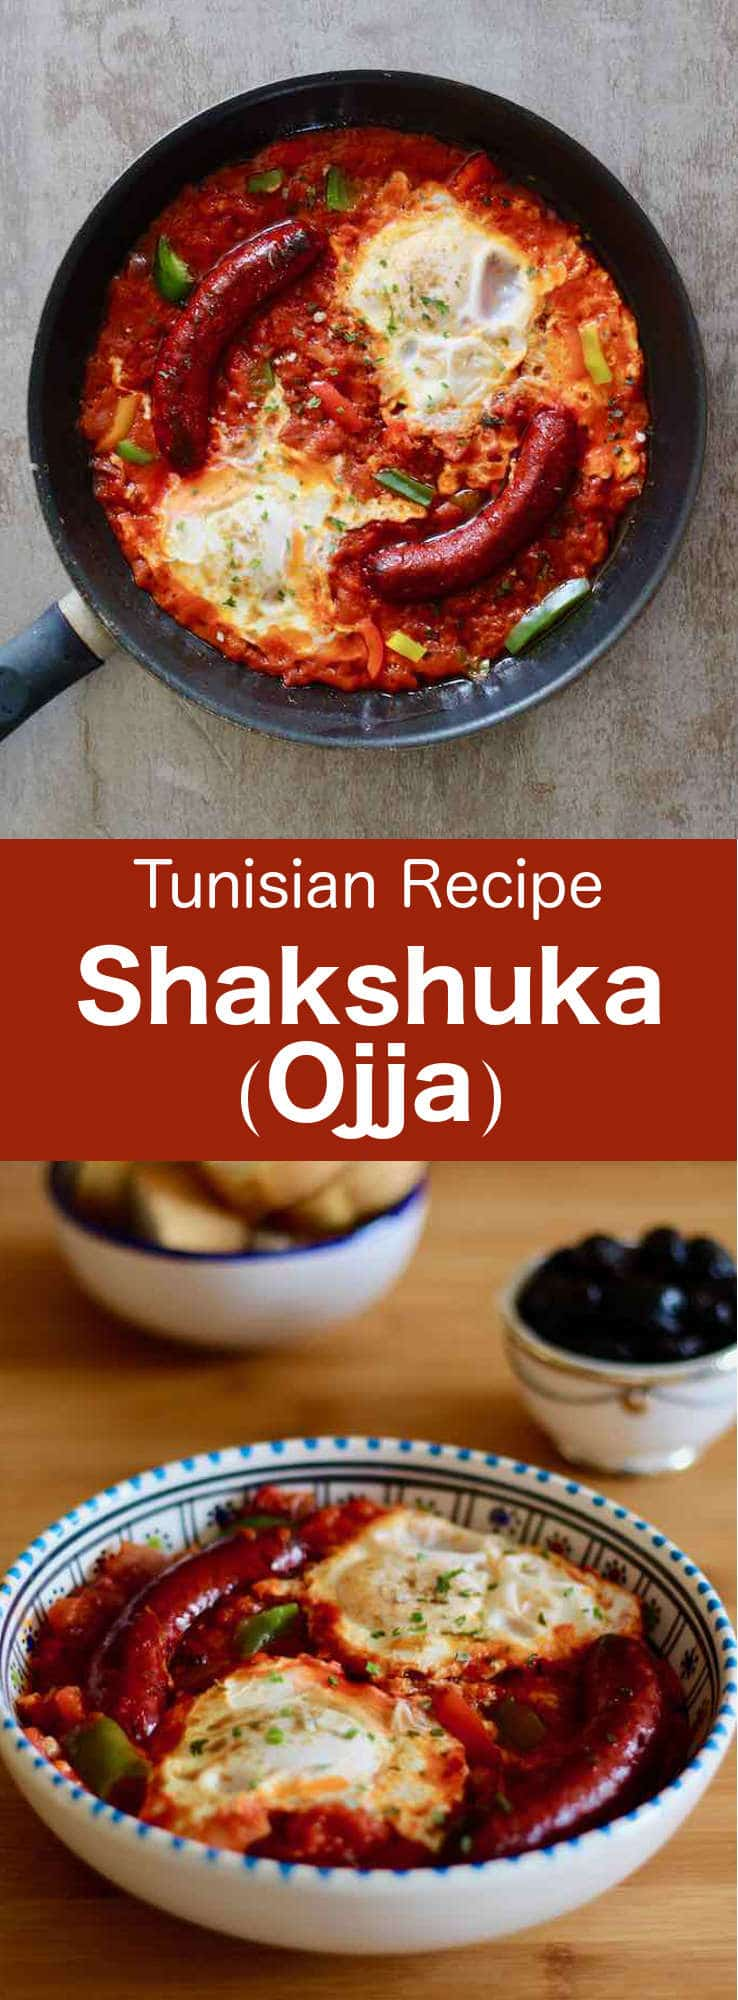 Ojja (or shakshuka) is a delicious dish of Tunisian origin, also popular in the Maghreb and the Middle East, which is prepared with tomatoes and simmered peppers in which eggs are added to be poached at the end of cooking. #Tunisia #Tunisian #TunisianCuisine #TunisianRecipe #NorthAfricanCuisine #NorthAfricanRecipe #NorthAfrica #Maghreb #MaghrebCuisine #WorldCuisine #196flavors